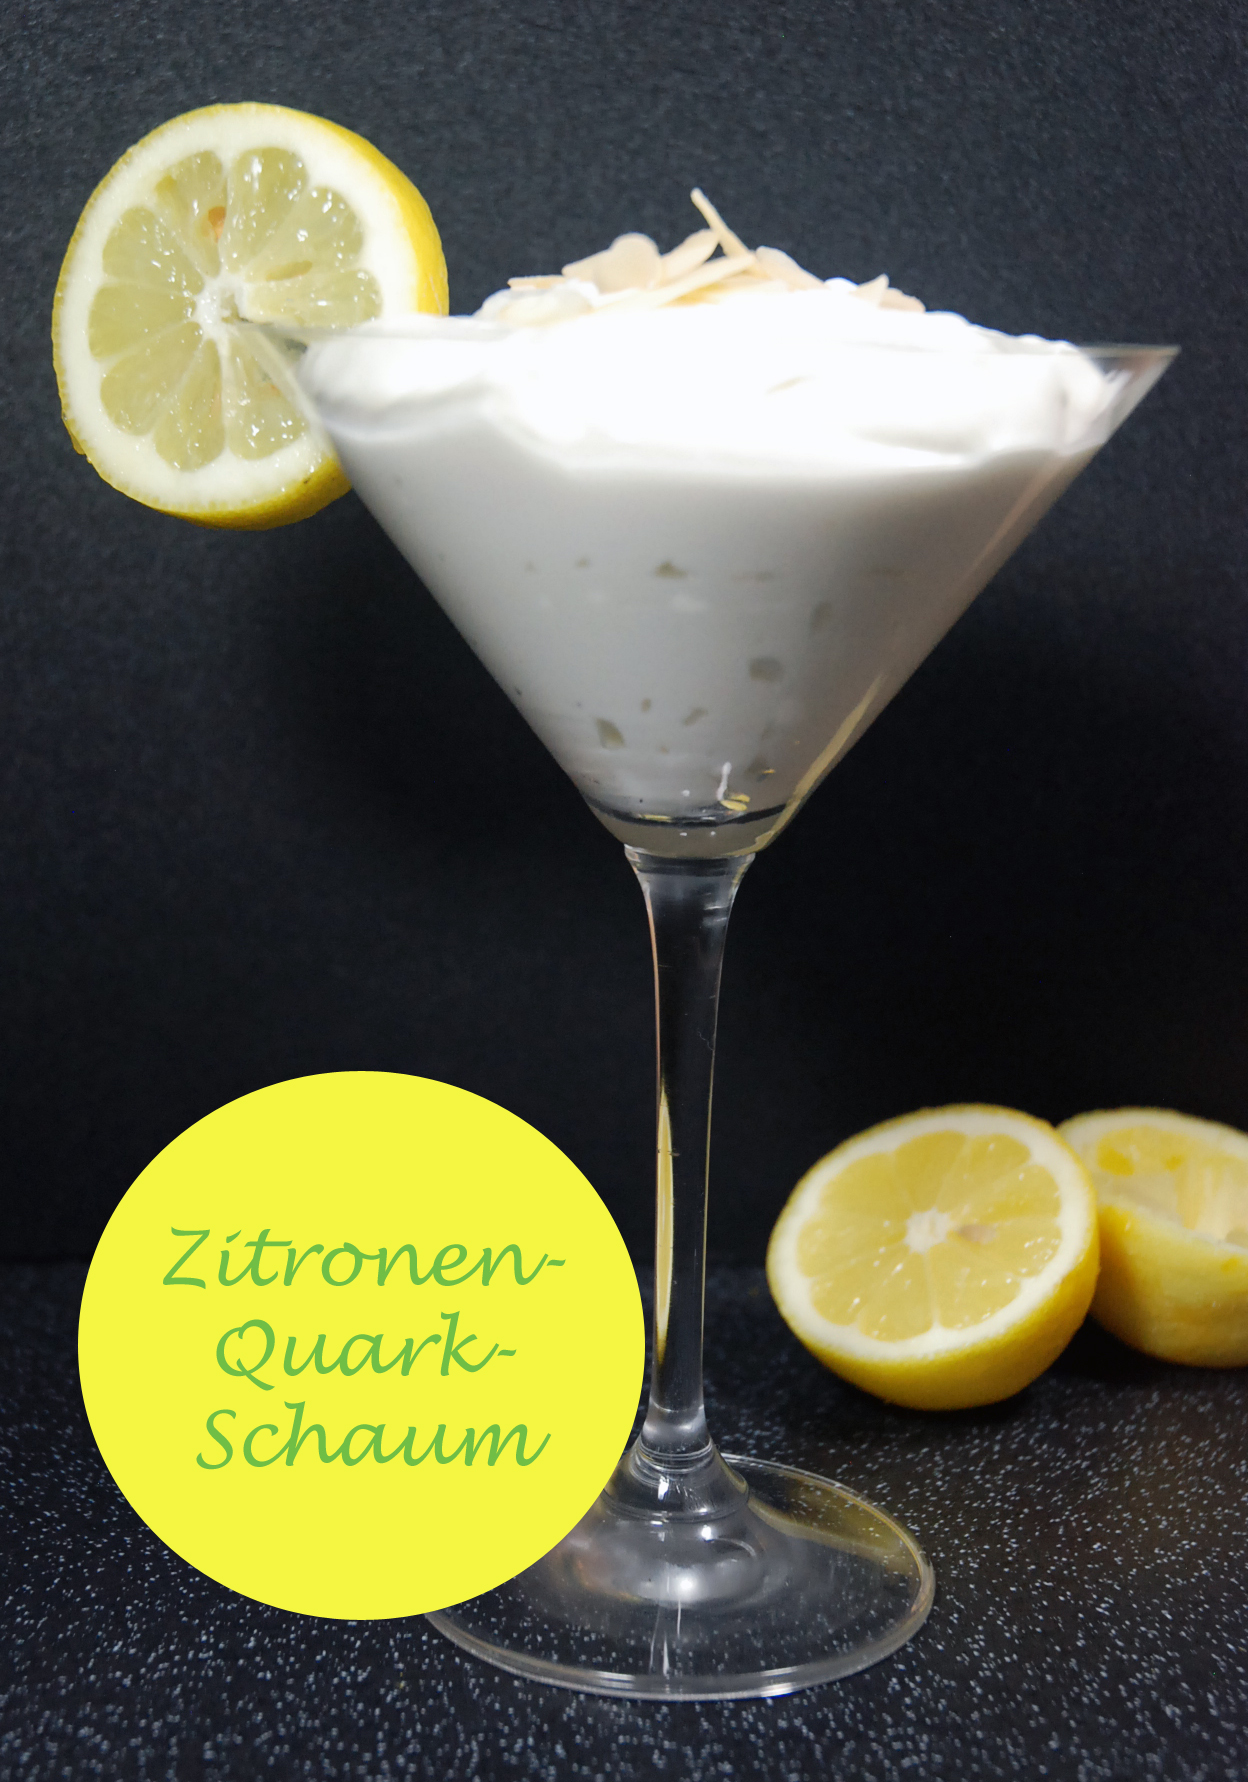 "<a href=""http://fitundgluecklich.net/2012/05/10/zitronen-quark-schaum-lemon-curd-cream/"">Zitronen Quark Schaum / Lemon curd cream</a>"